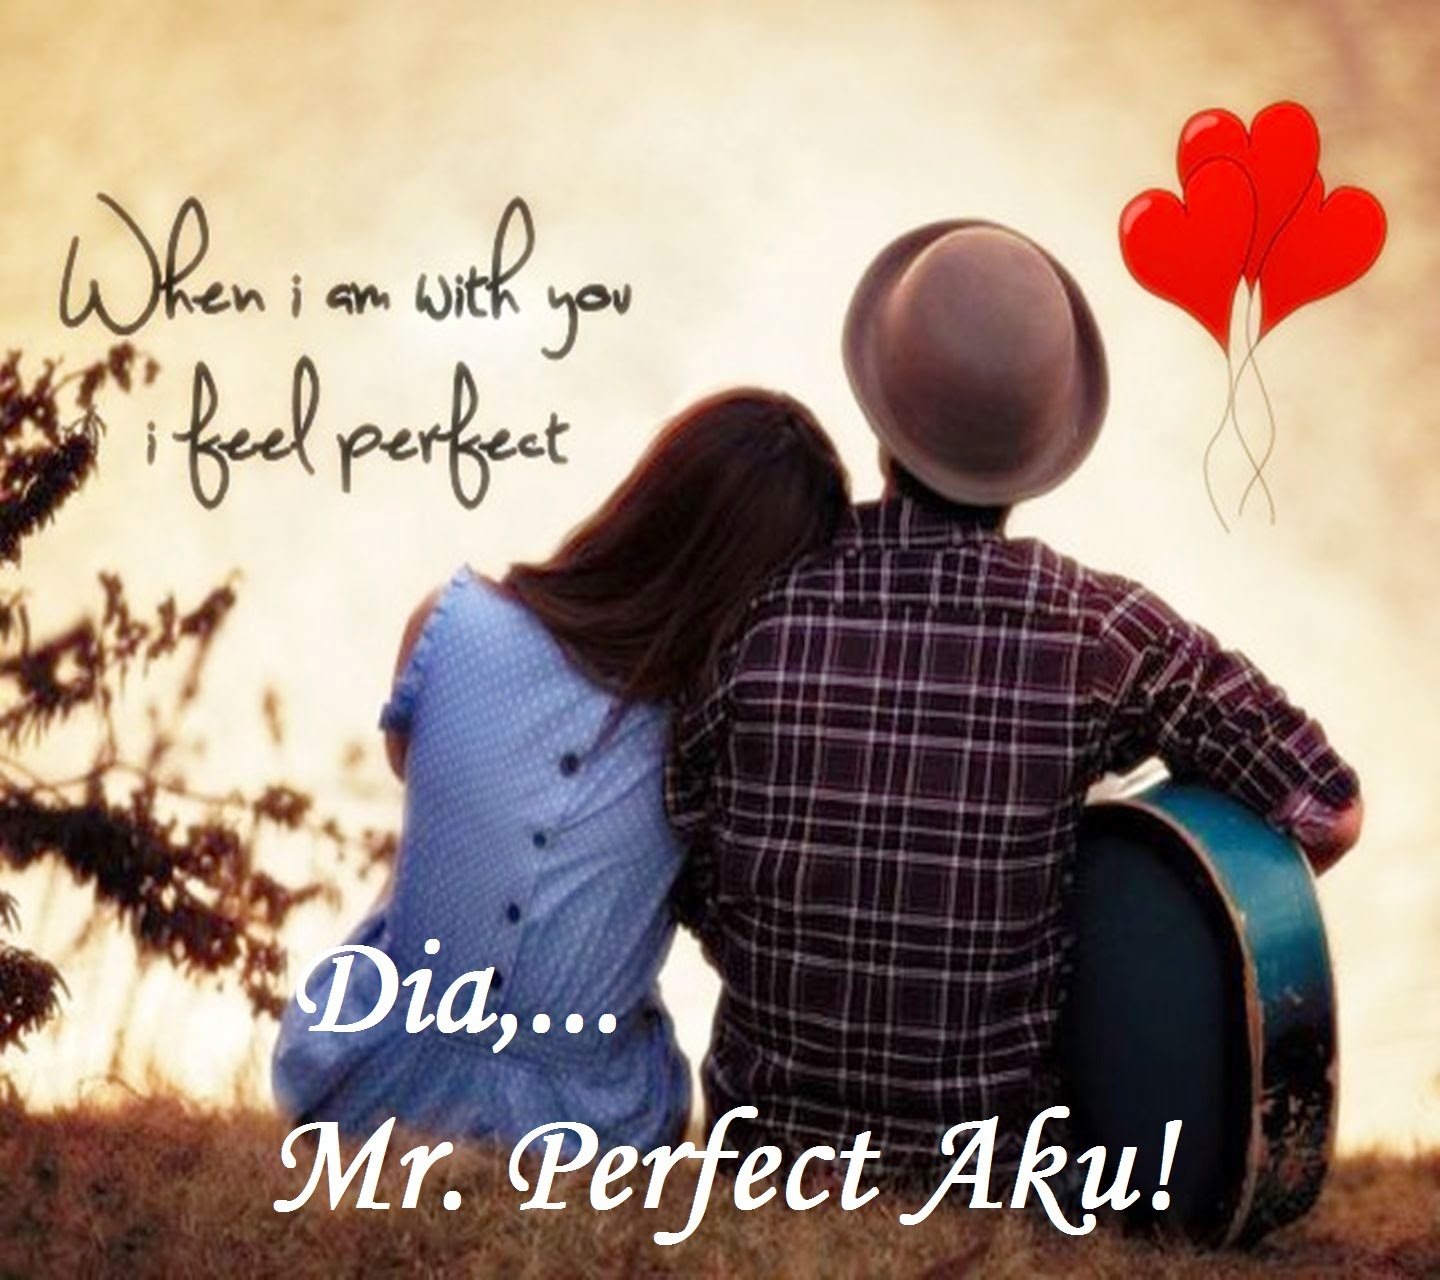 DIA,... MR. PERFECT AKU!